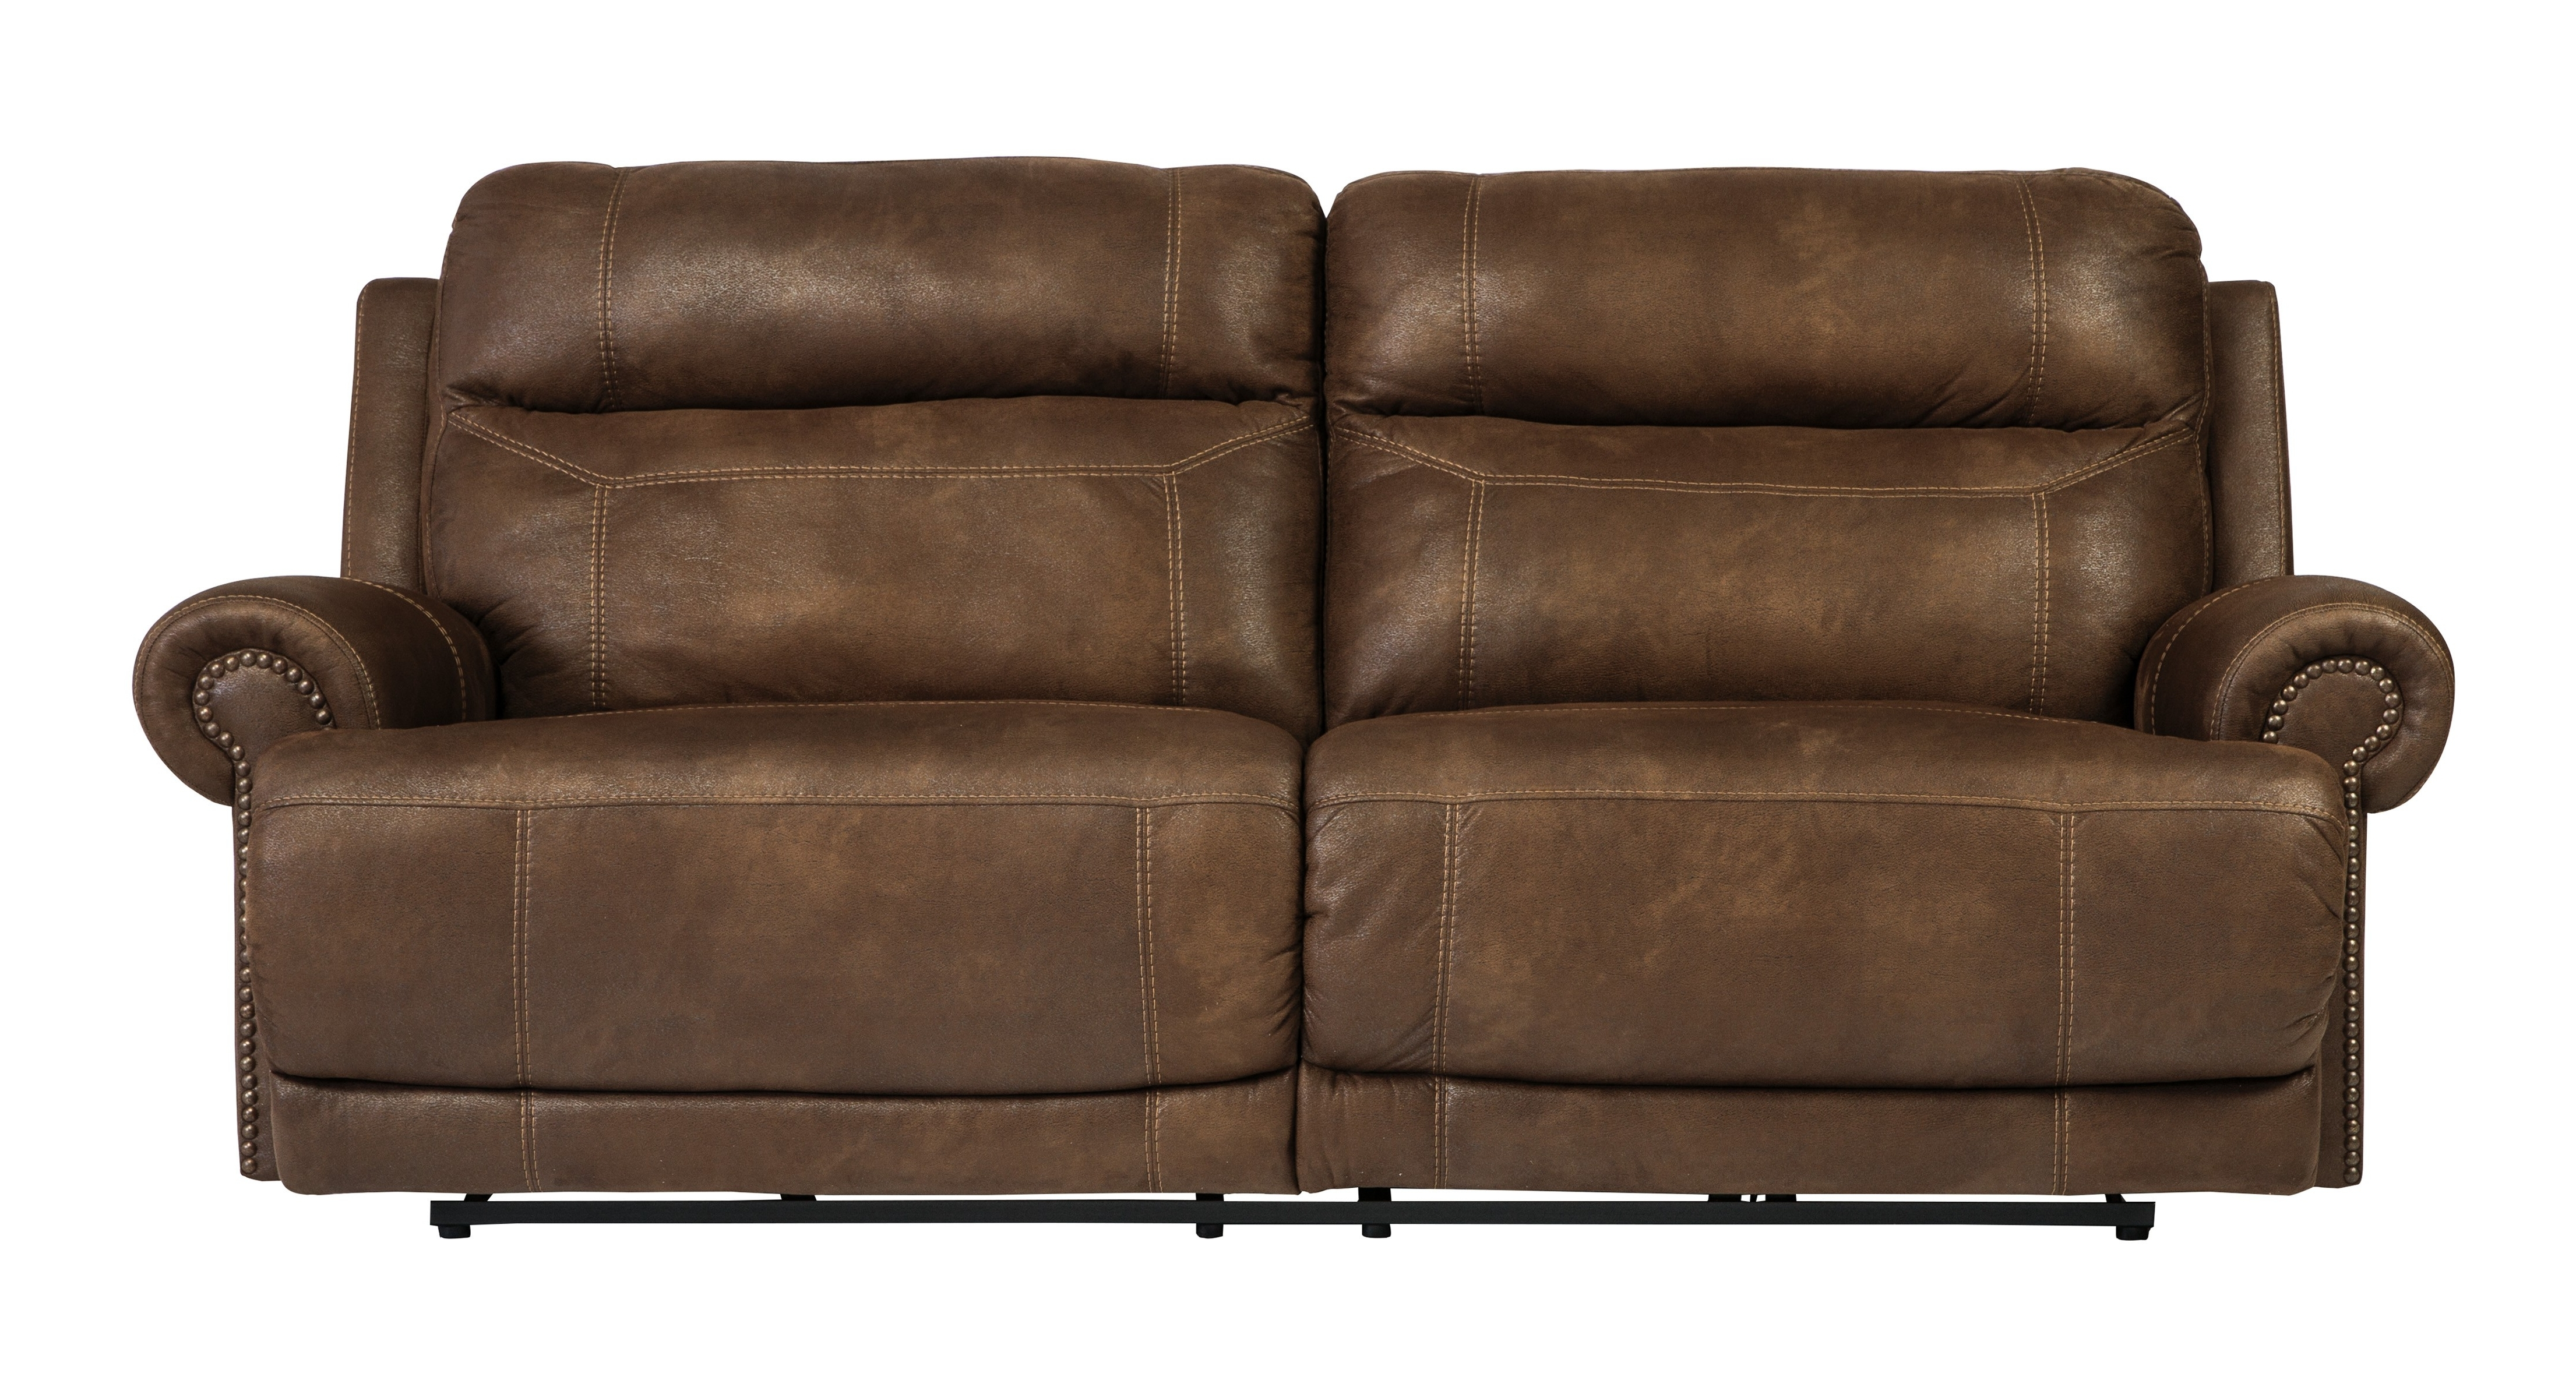 2 Seat Recliner Sofas Inside Widely Used Buy Austere – Brown 2 Seat Reclining Sofasignature Design From (View 5 of 20)